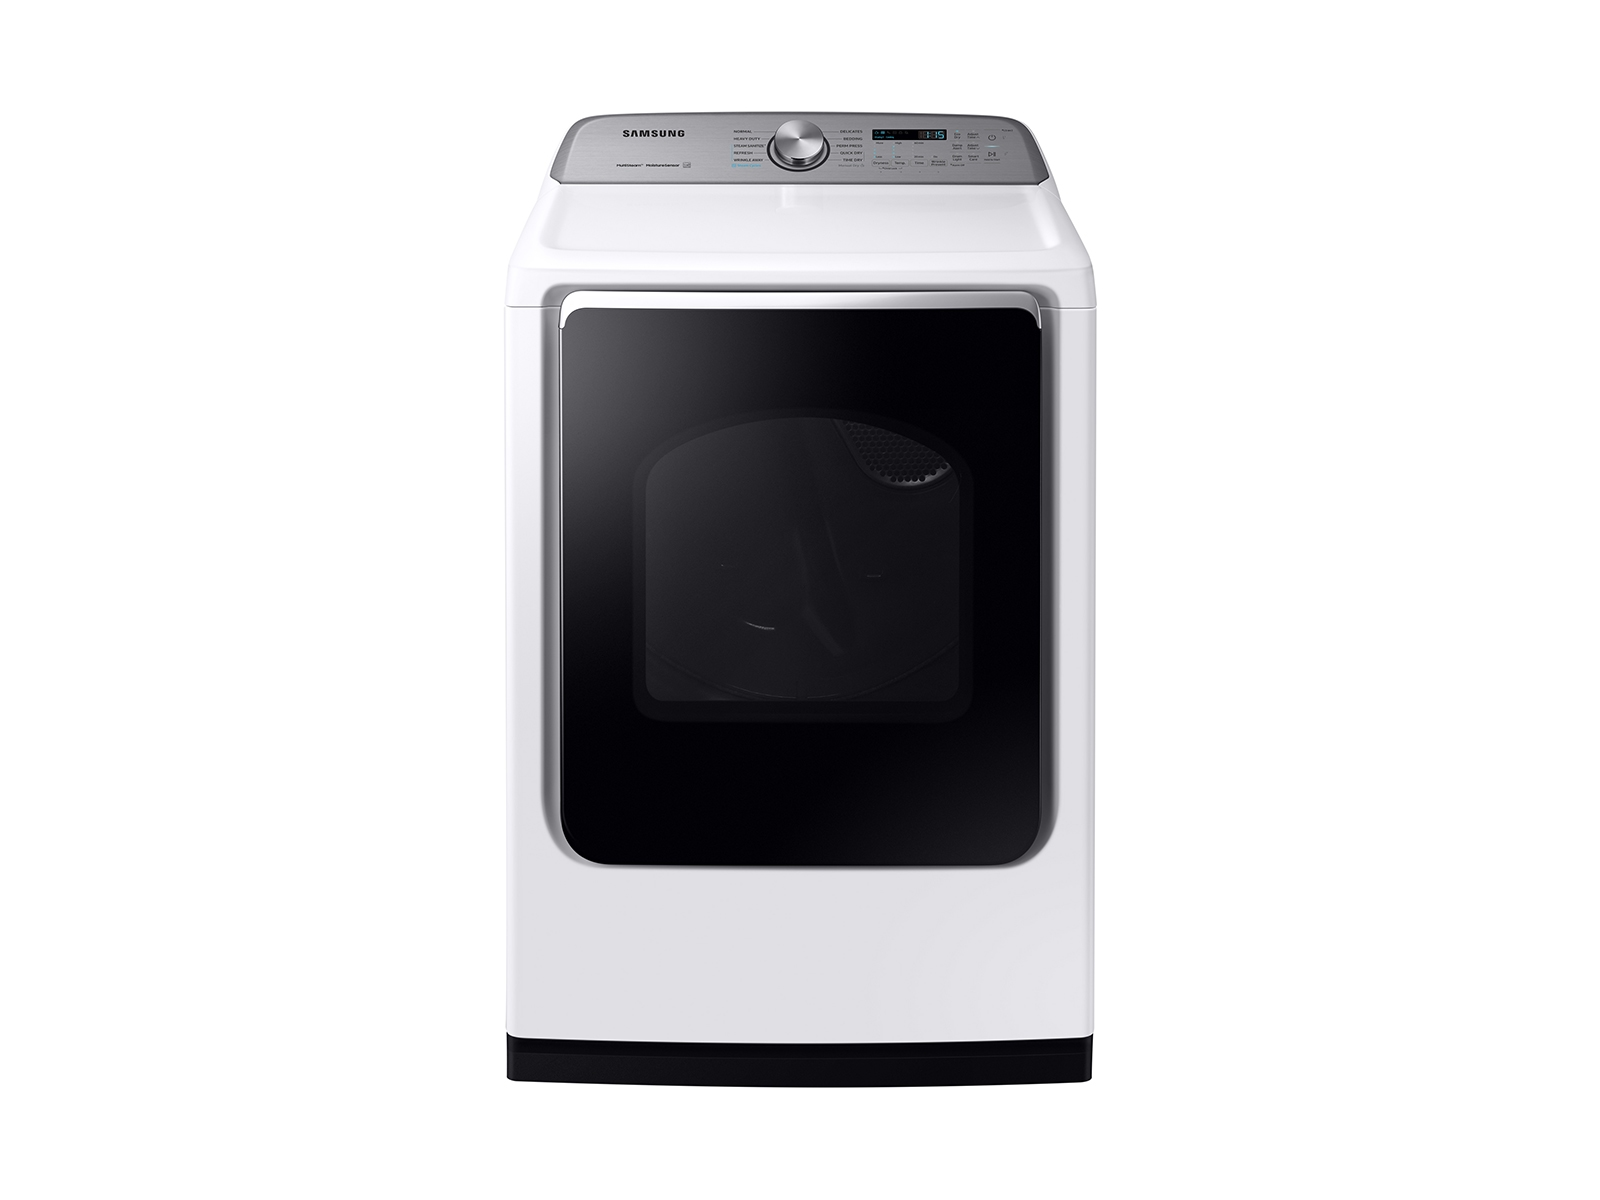 Samsung 7.4 cu. ft. Electric Dryer with Steam Sanitize+ in White